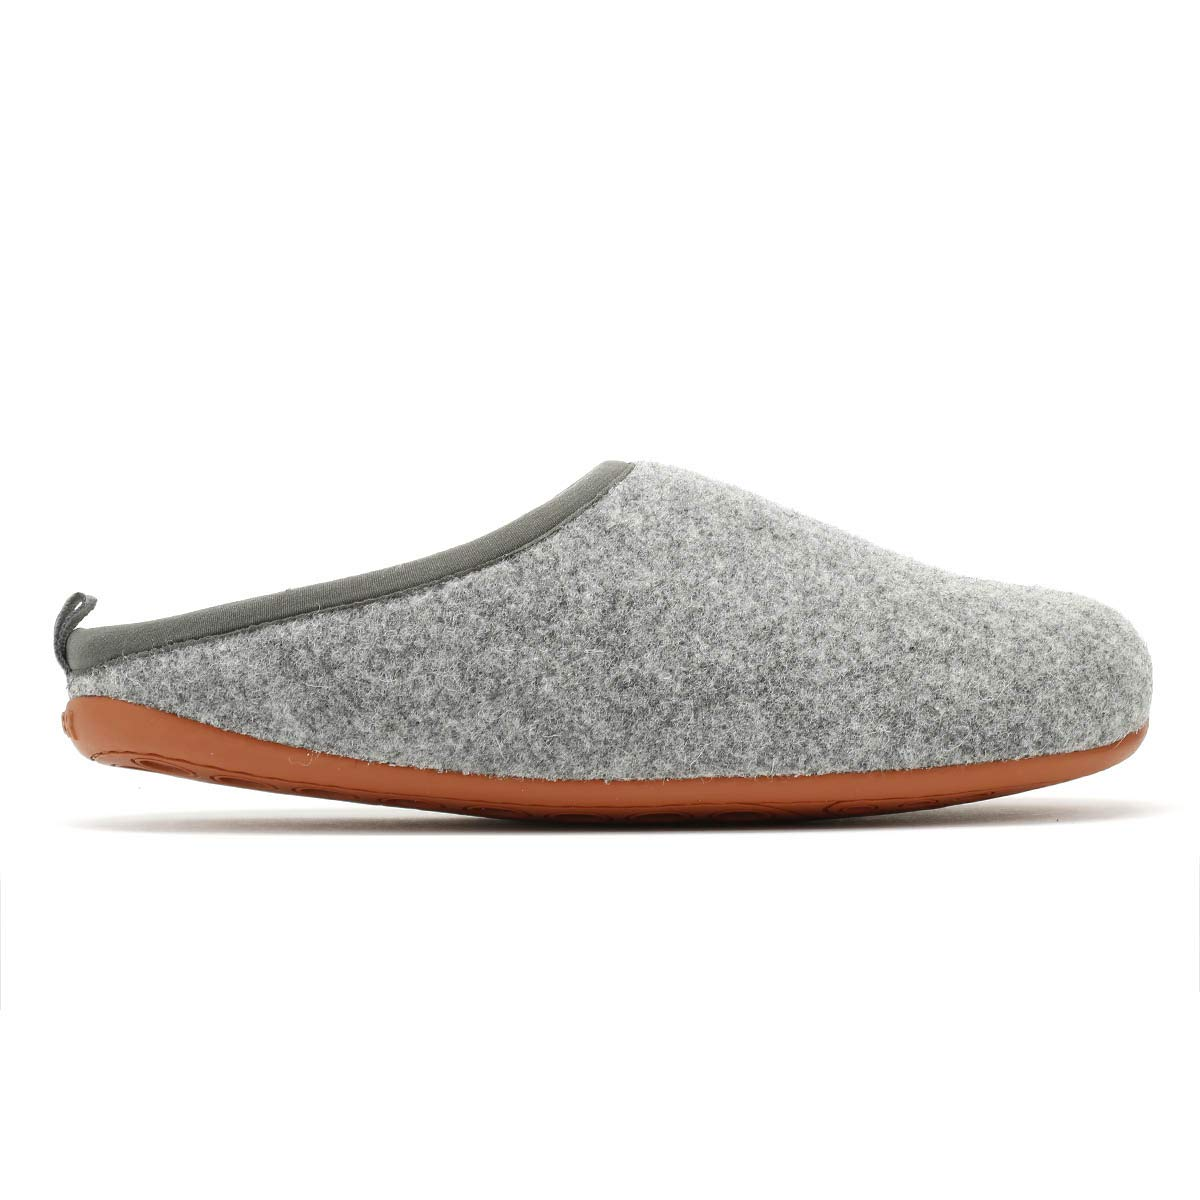 b6aedbf92d7c Camper Wabi Mens Wool Mule Slippers Pastel Grey 46  Amazon.co.uk  Shoes    Bags